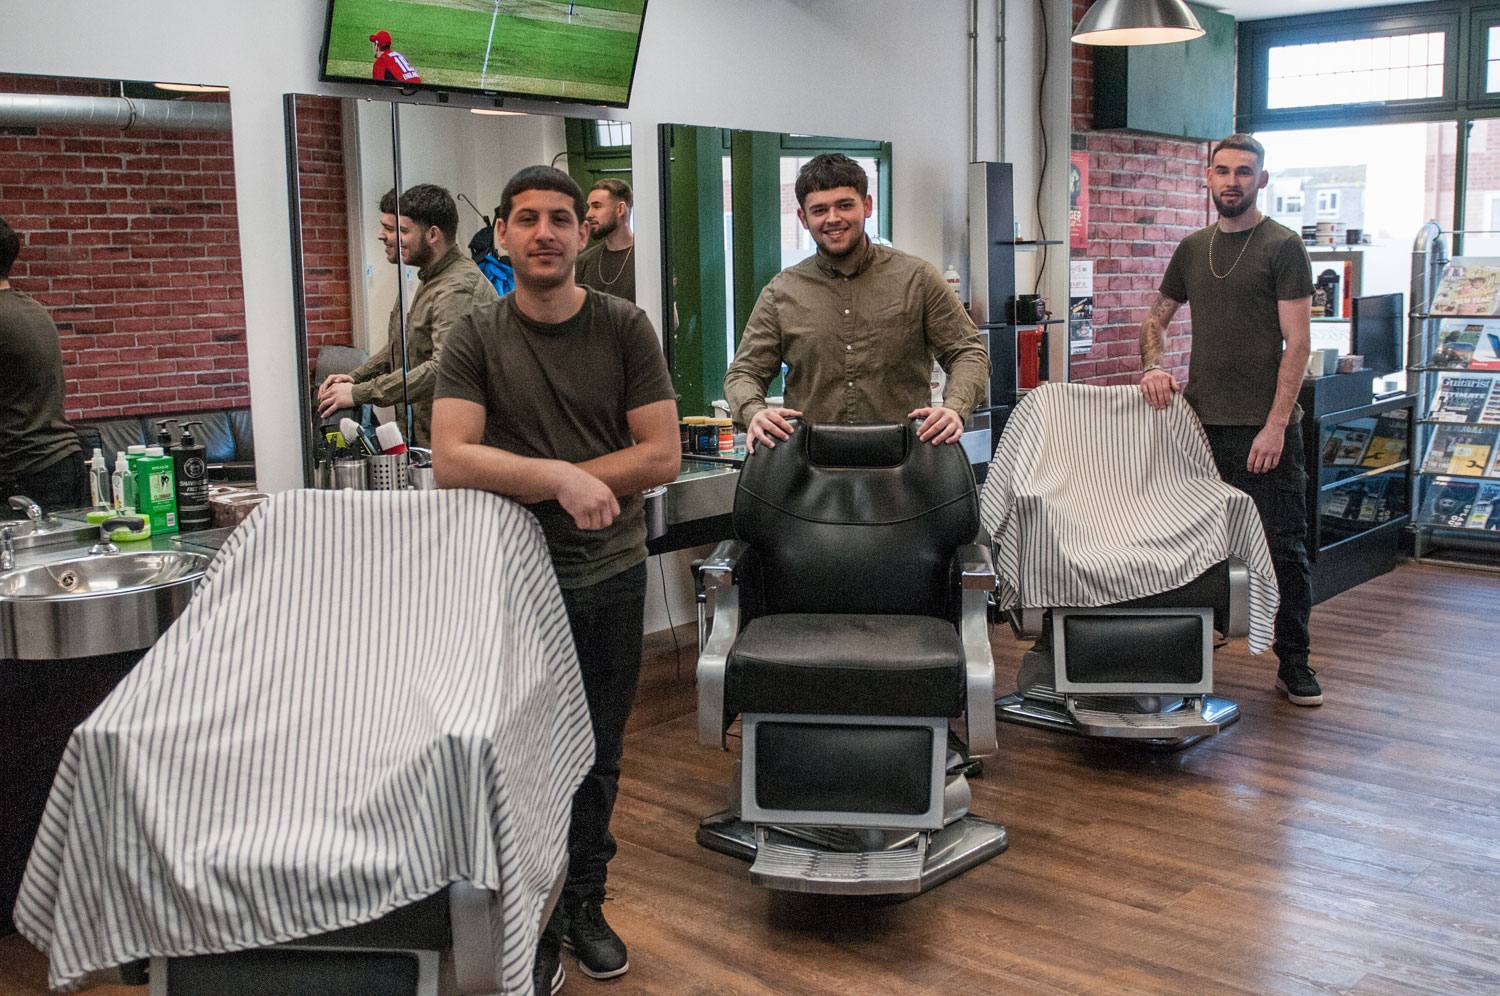 No. 1 Barbers are March's barbers of the month